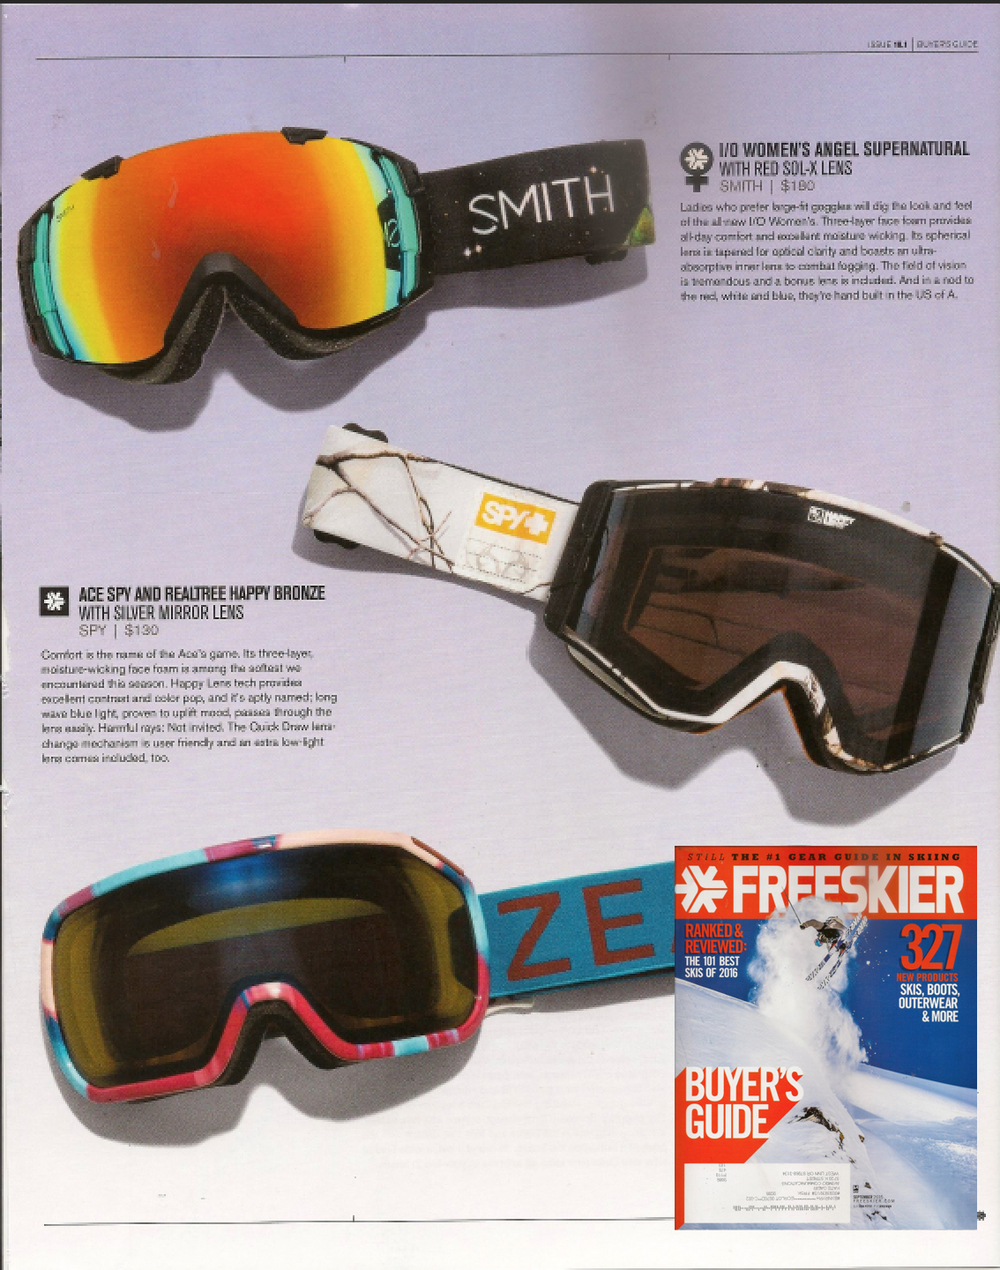 Freeskier, September 2015